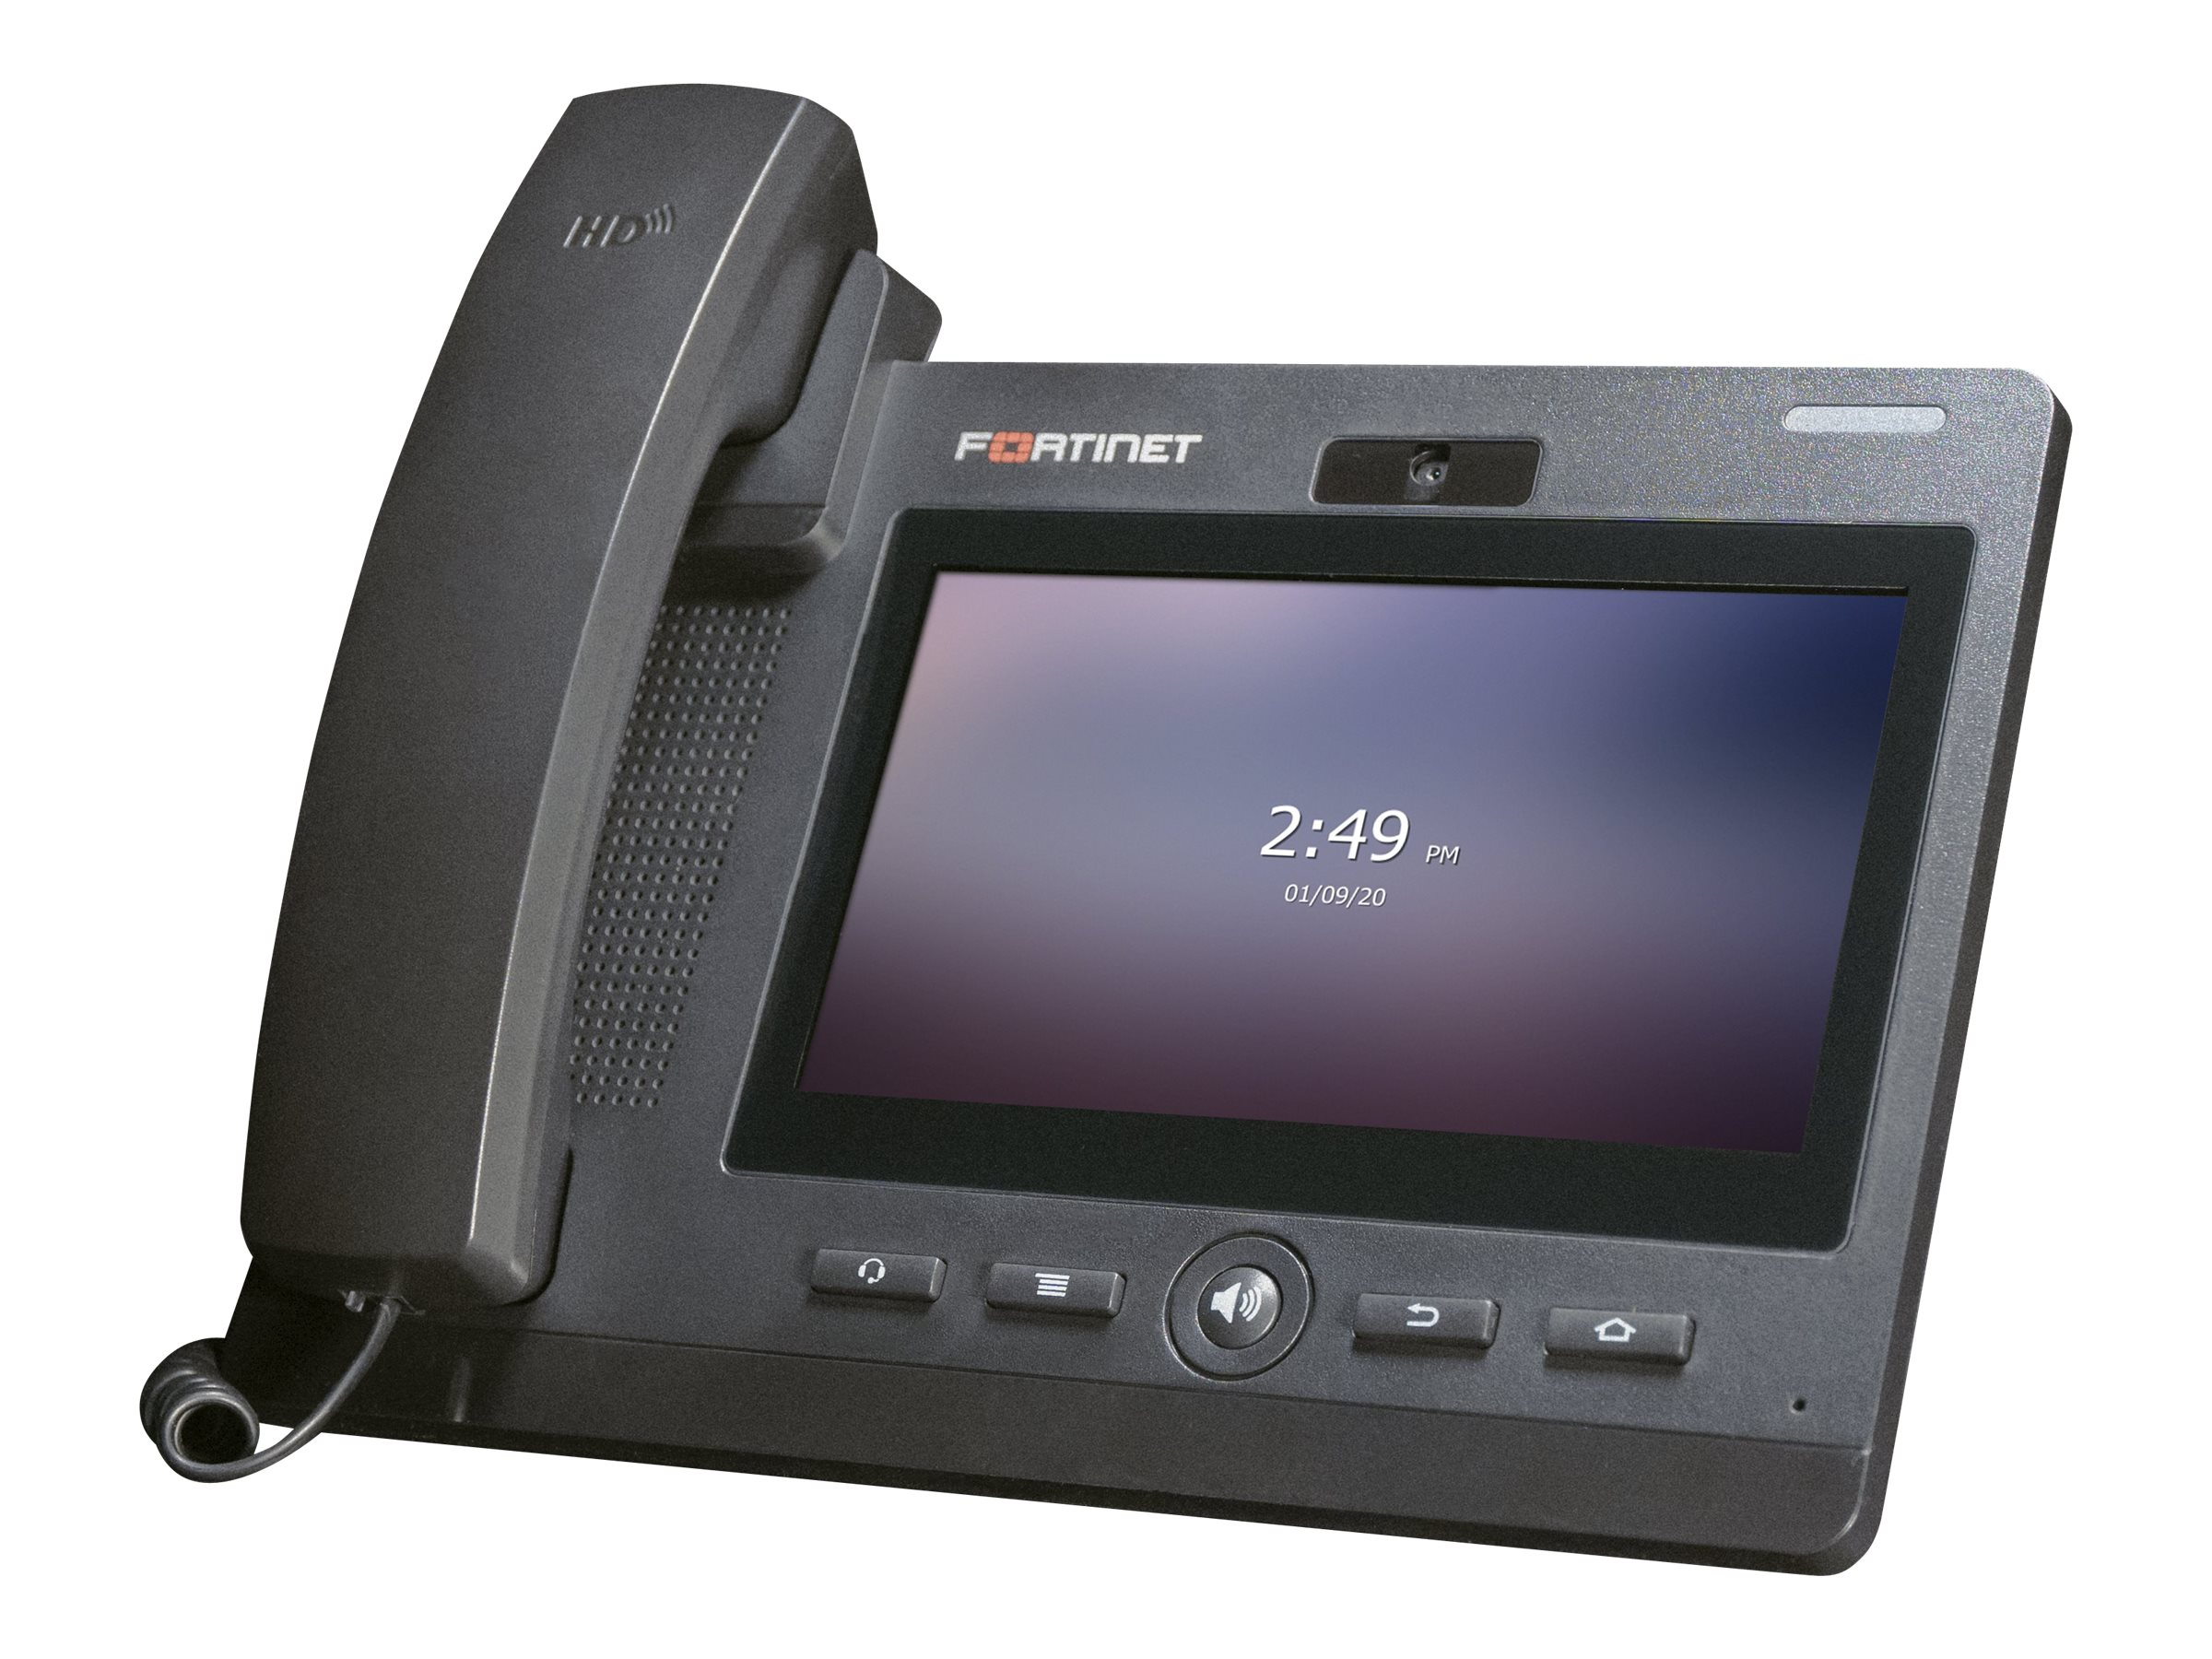 Fortinet FortiFone FON-675i - IP video phone - with digital camera - 3-way call capability